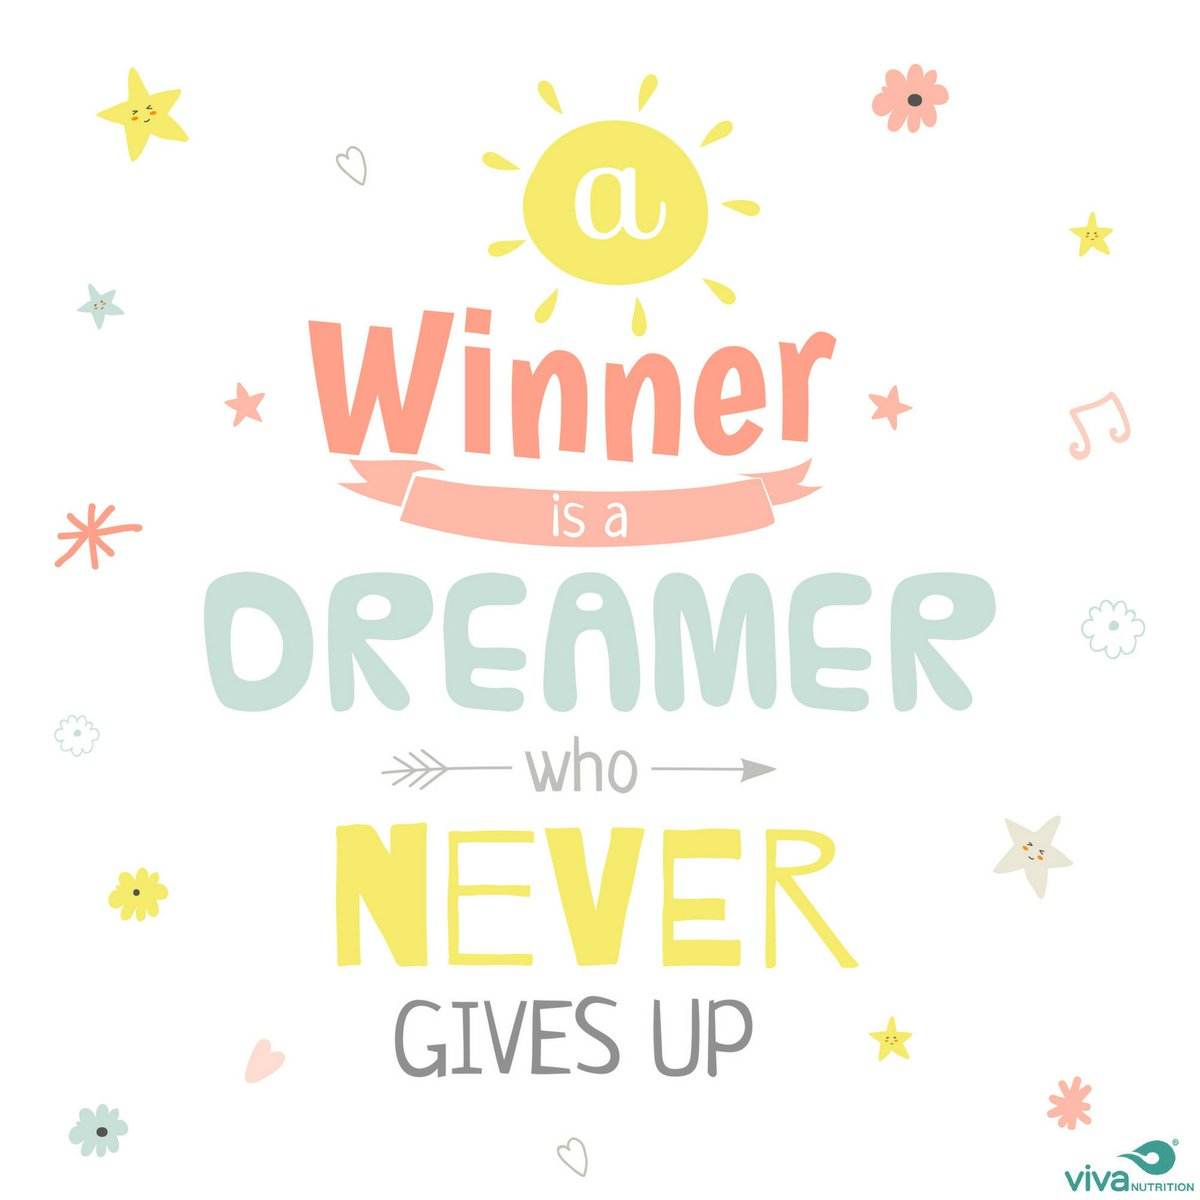 A winner is a dreamer who never gives up. #Quote #NeverGiveUp #Dreamer https://t.co/hgj56HENoH